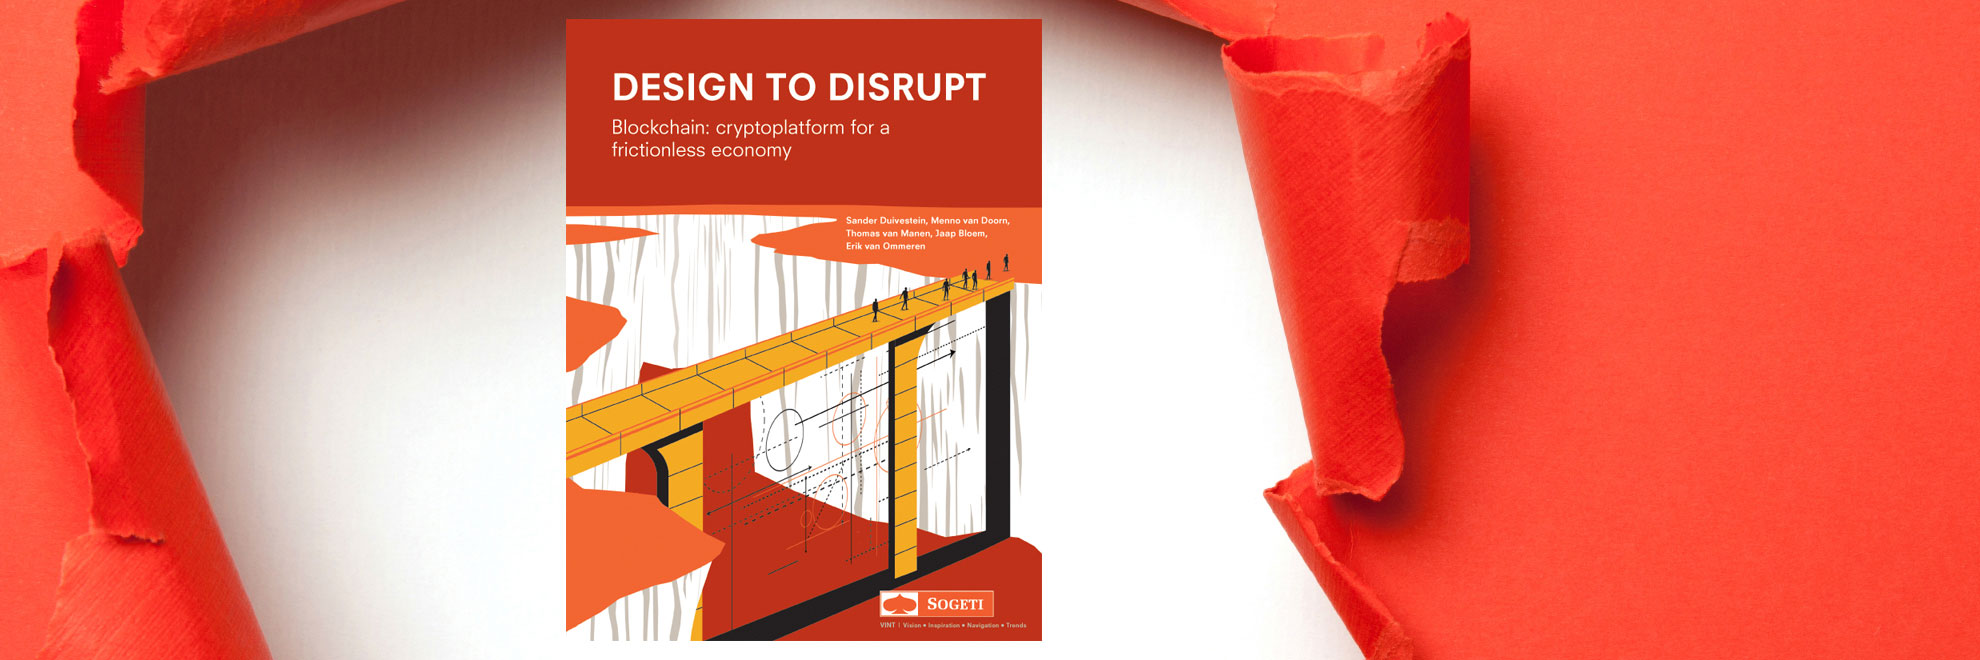 Design to Disrupt 3